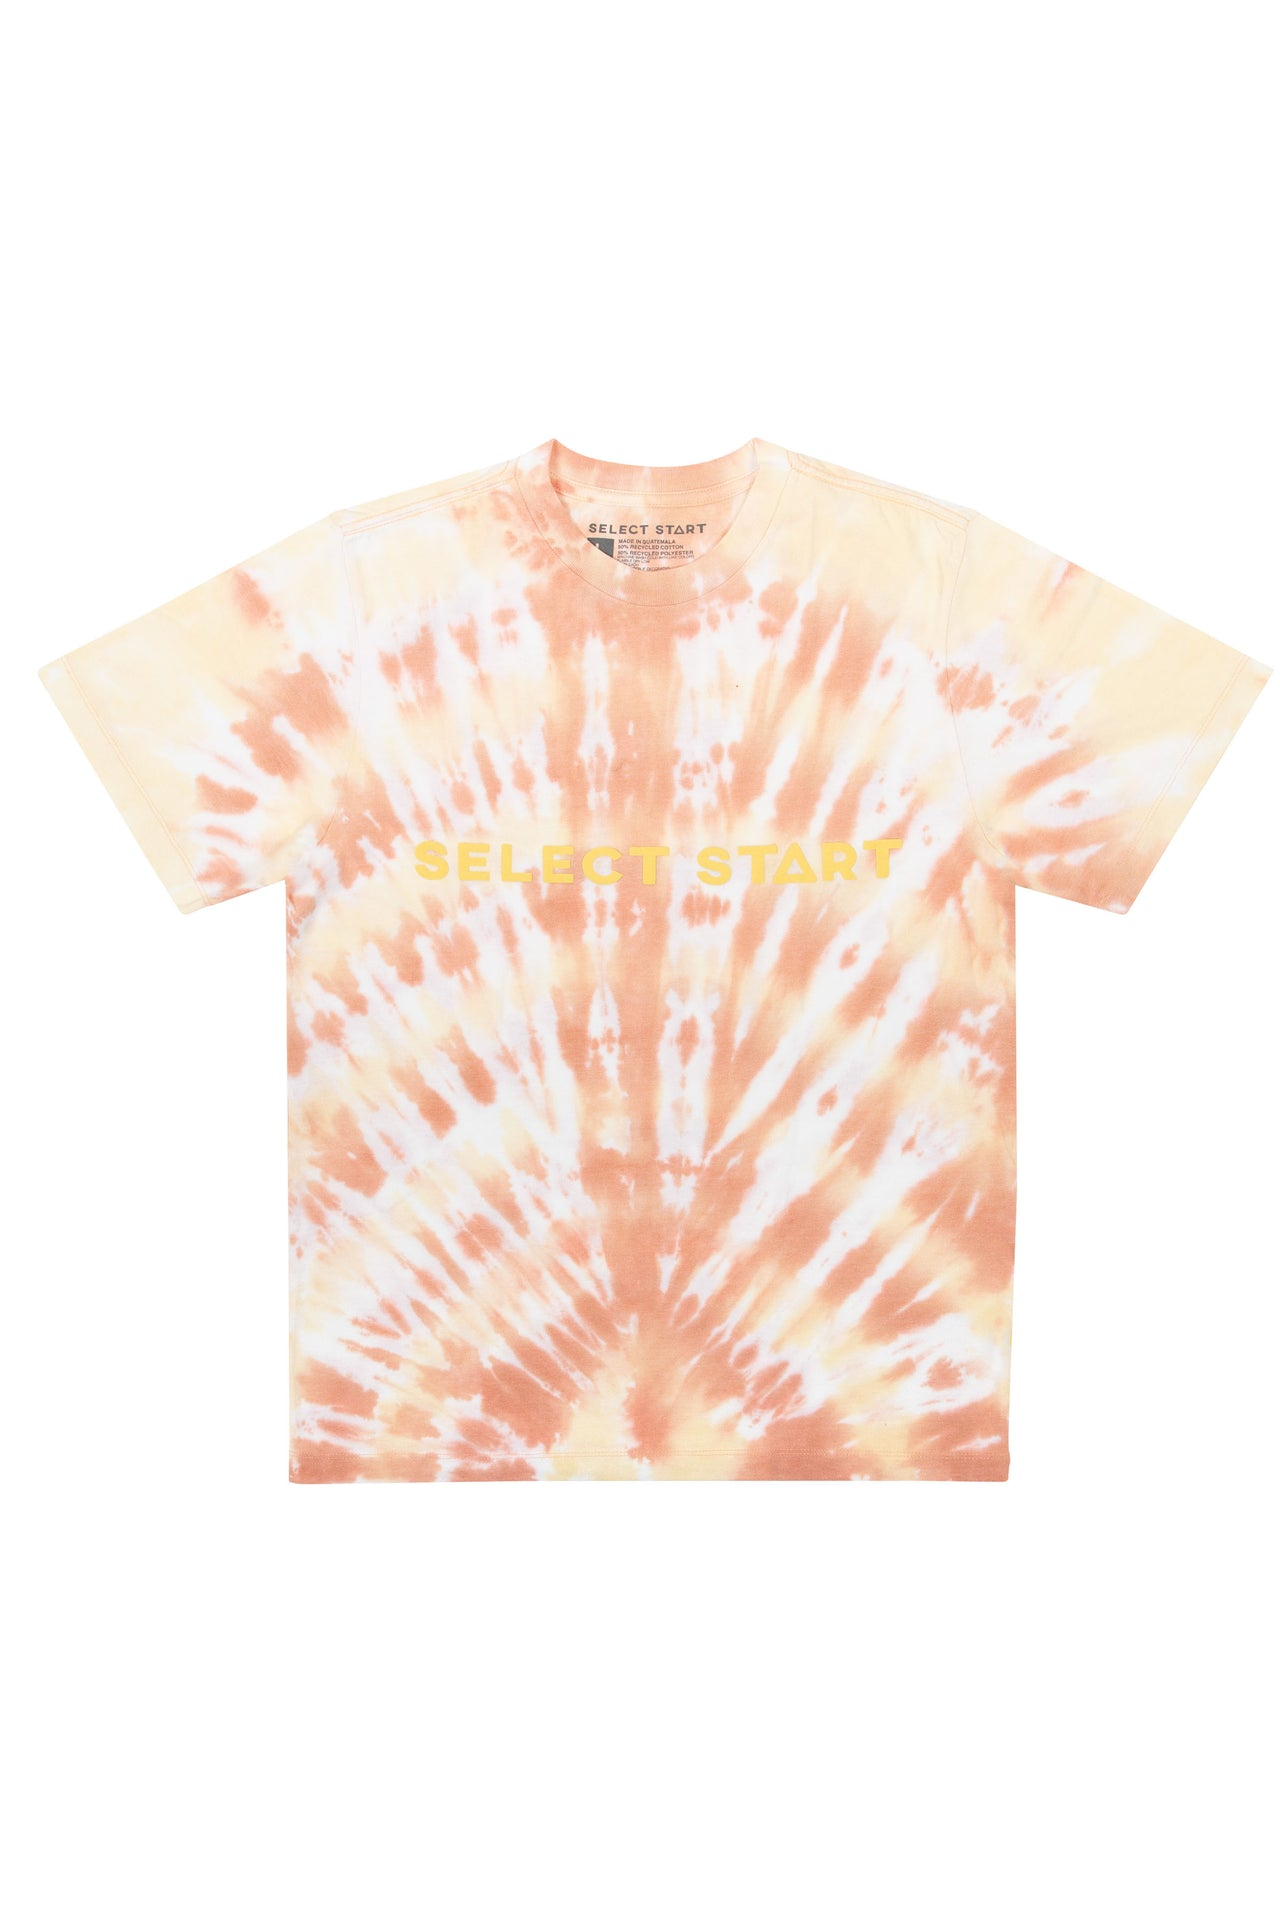 Select Start Tie-Dye Logo Tee - Select Start